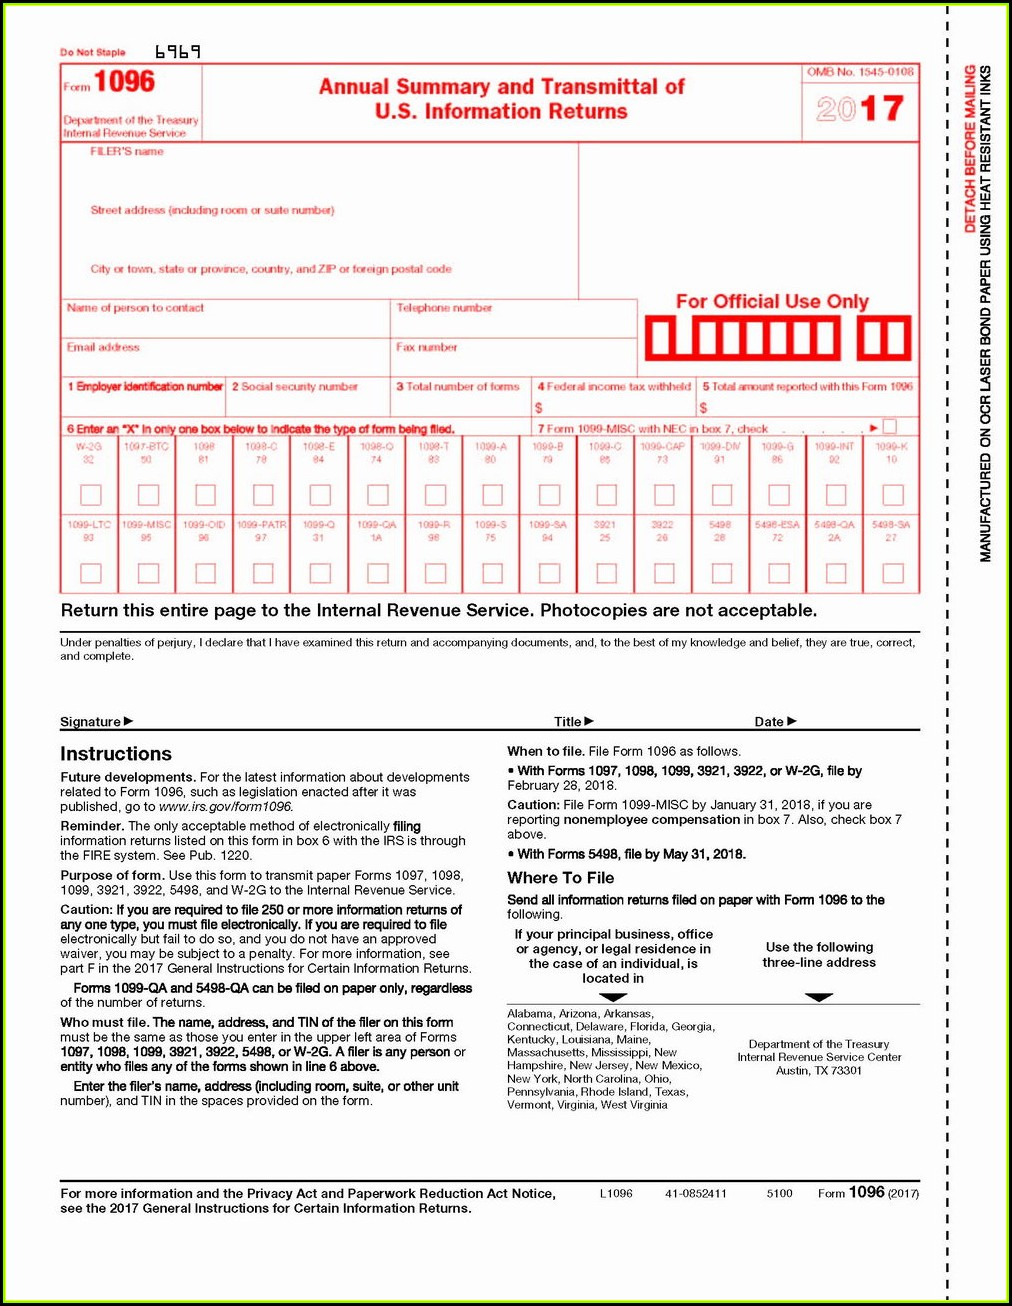 Issuing 1099 Forms